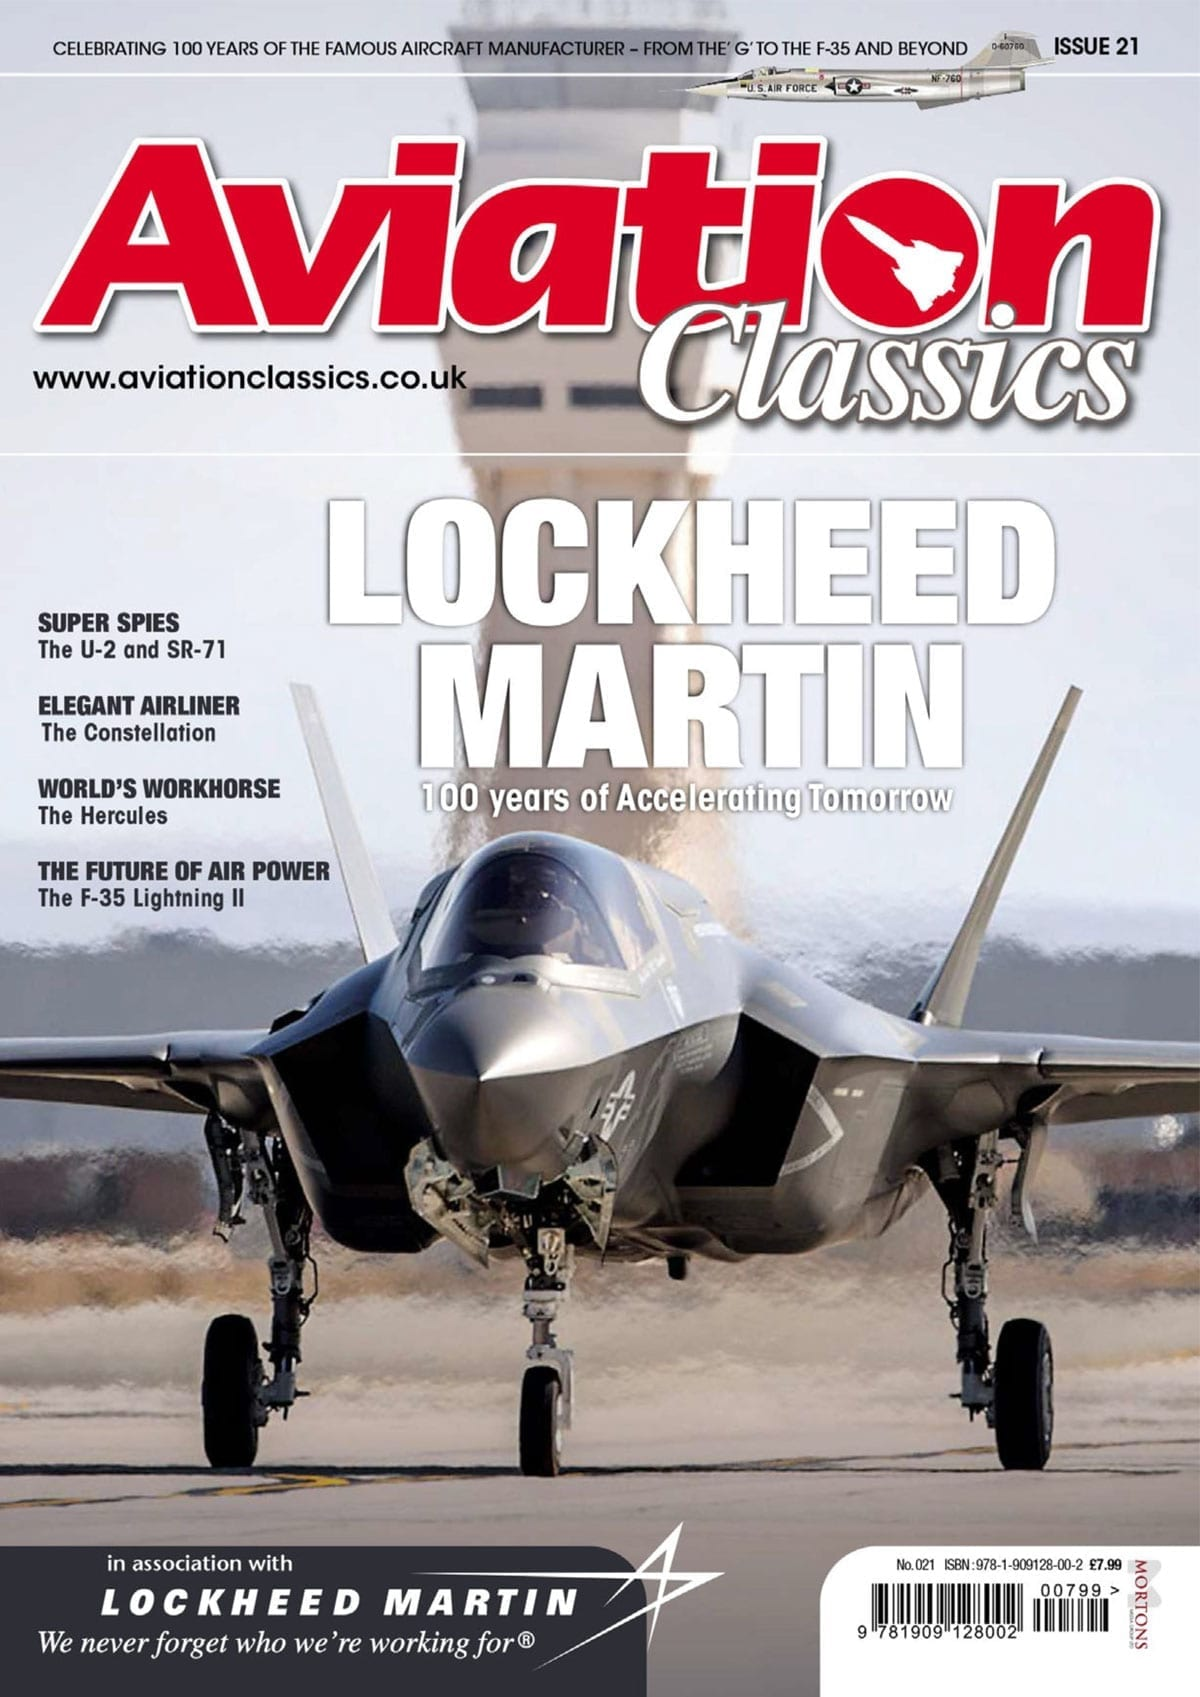 Aviation Classics - Lockheed Martin